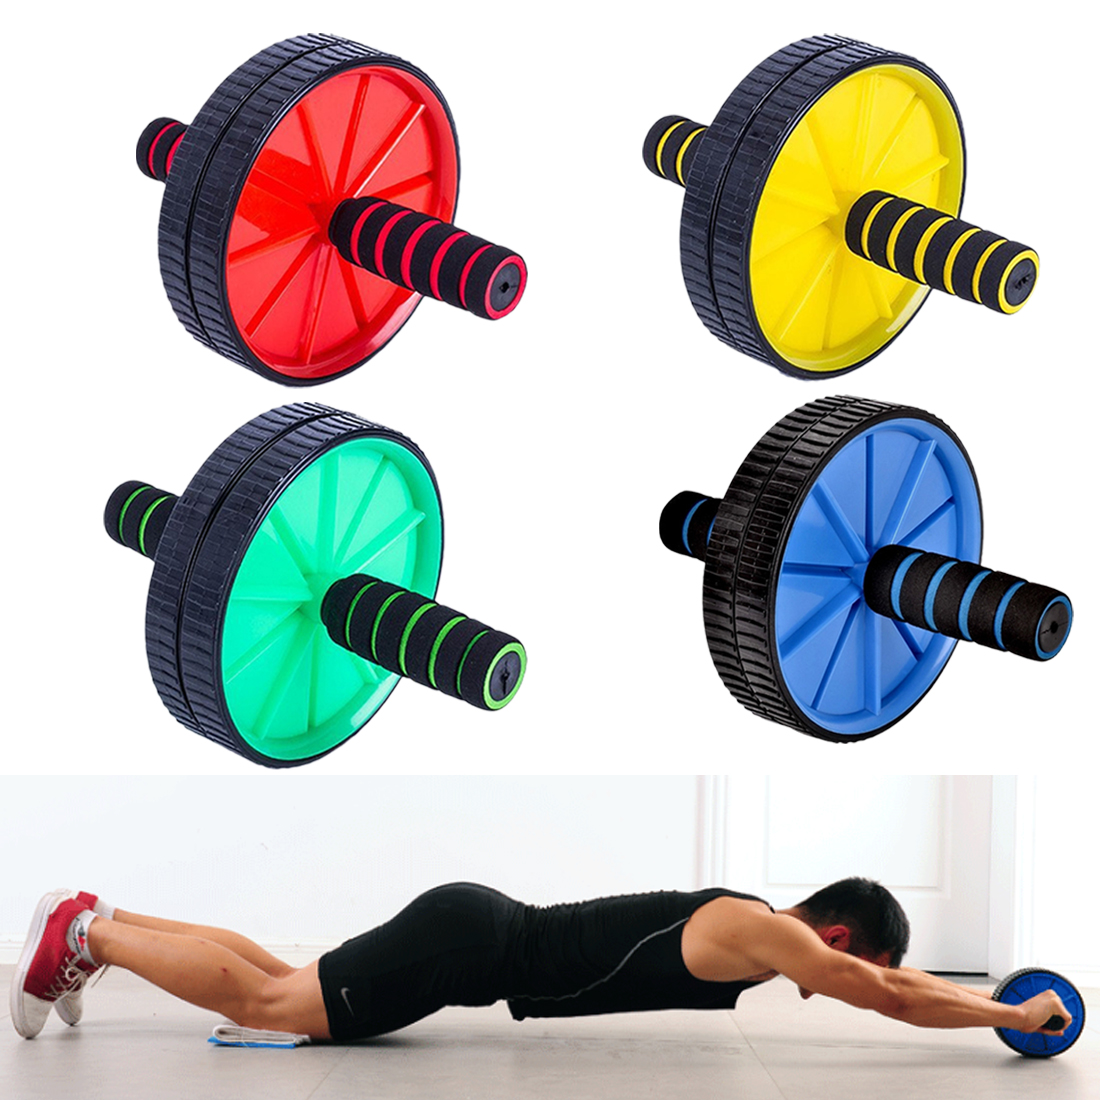 Professional Double-wheeled Updated Ab Abdominal Press Wheel Rollers Crossfit Gym Exercise Equipment For Body Building Fitness